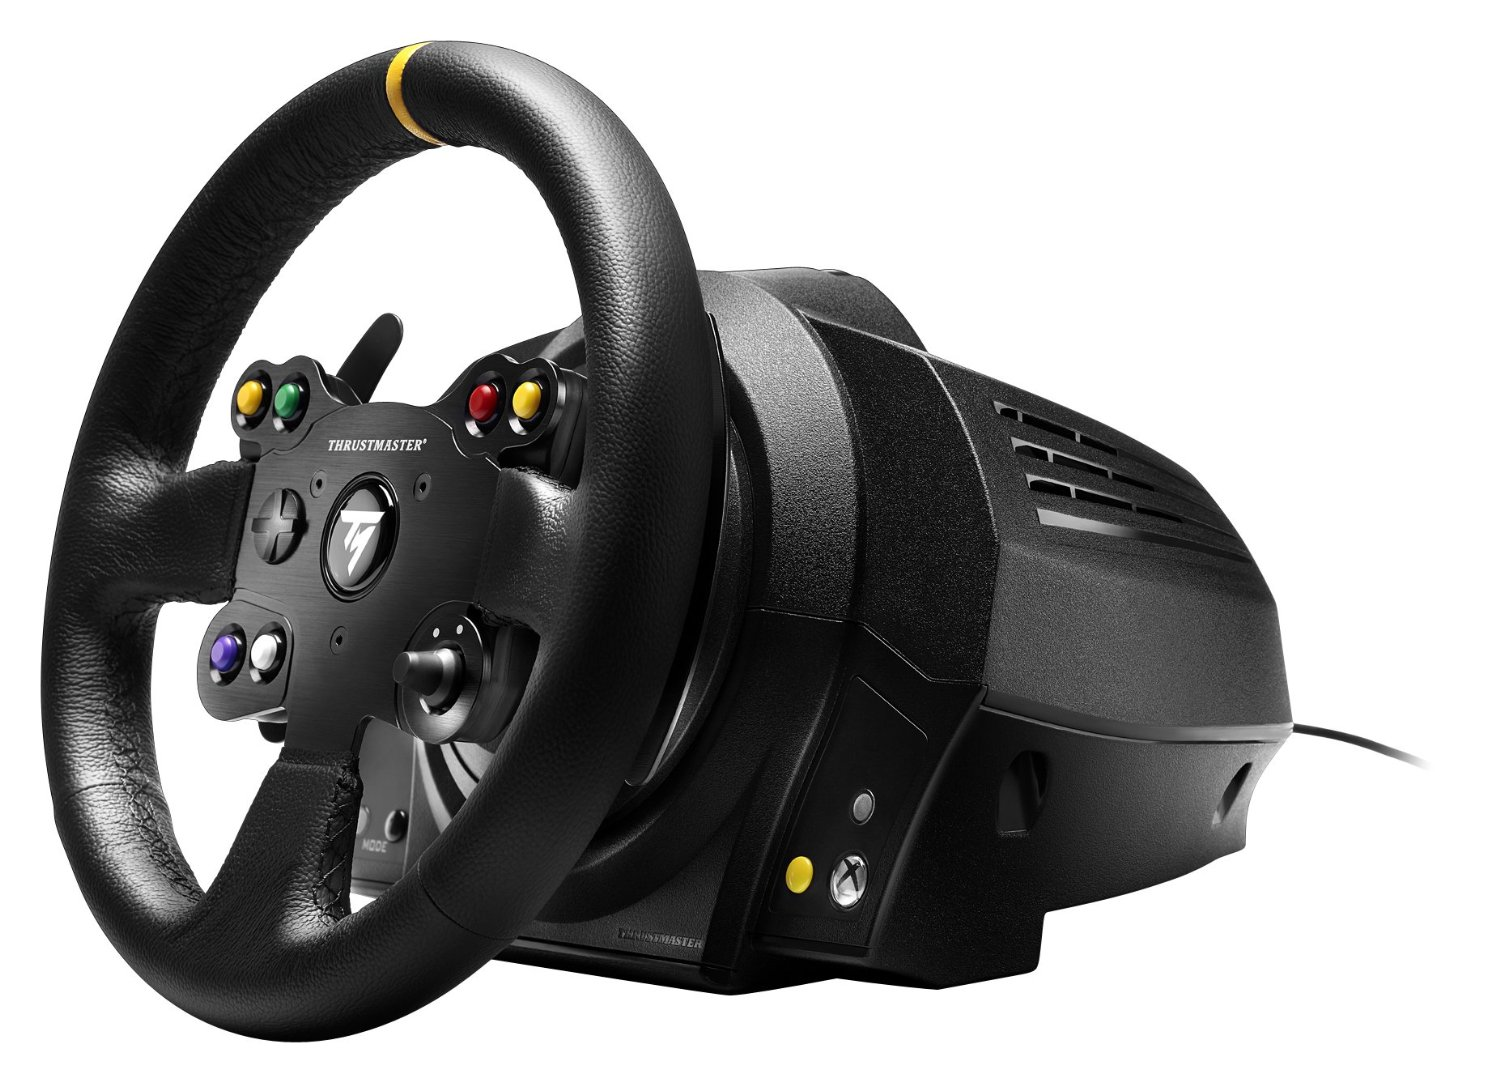 Details And Images For The Thrustmaster VG TX Racing Wheel Leather Edition Xbox One Racing Wheel